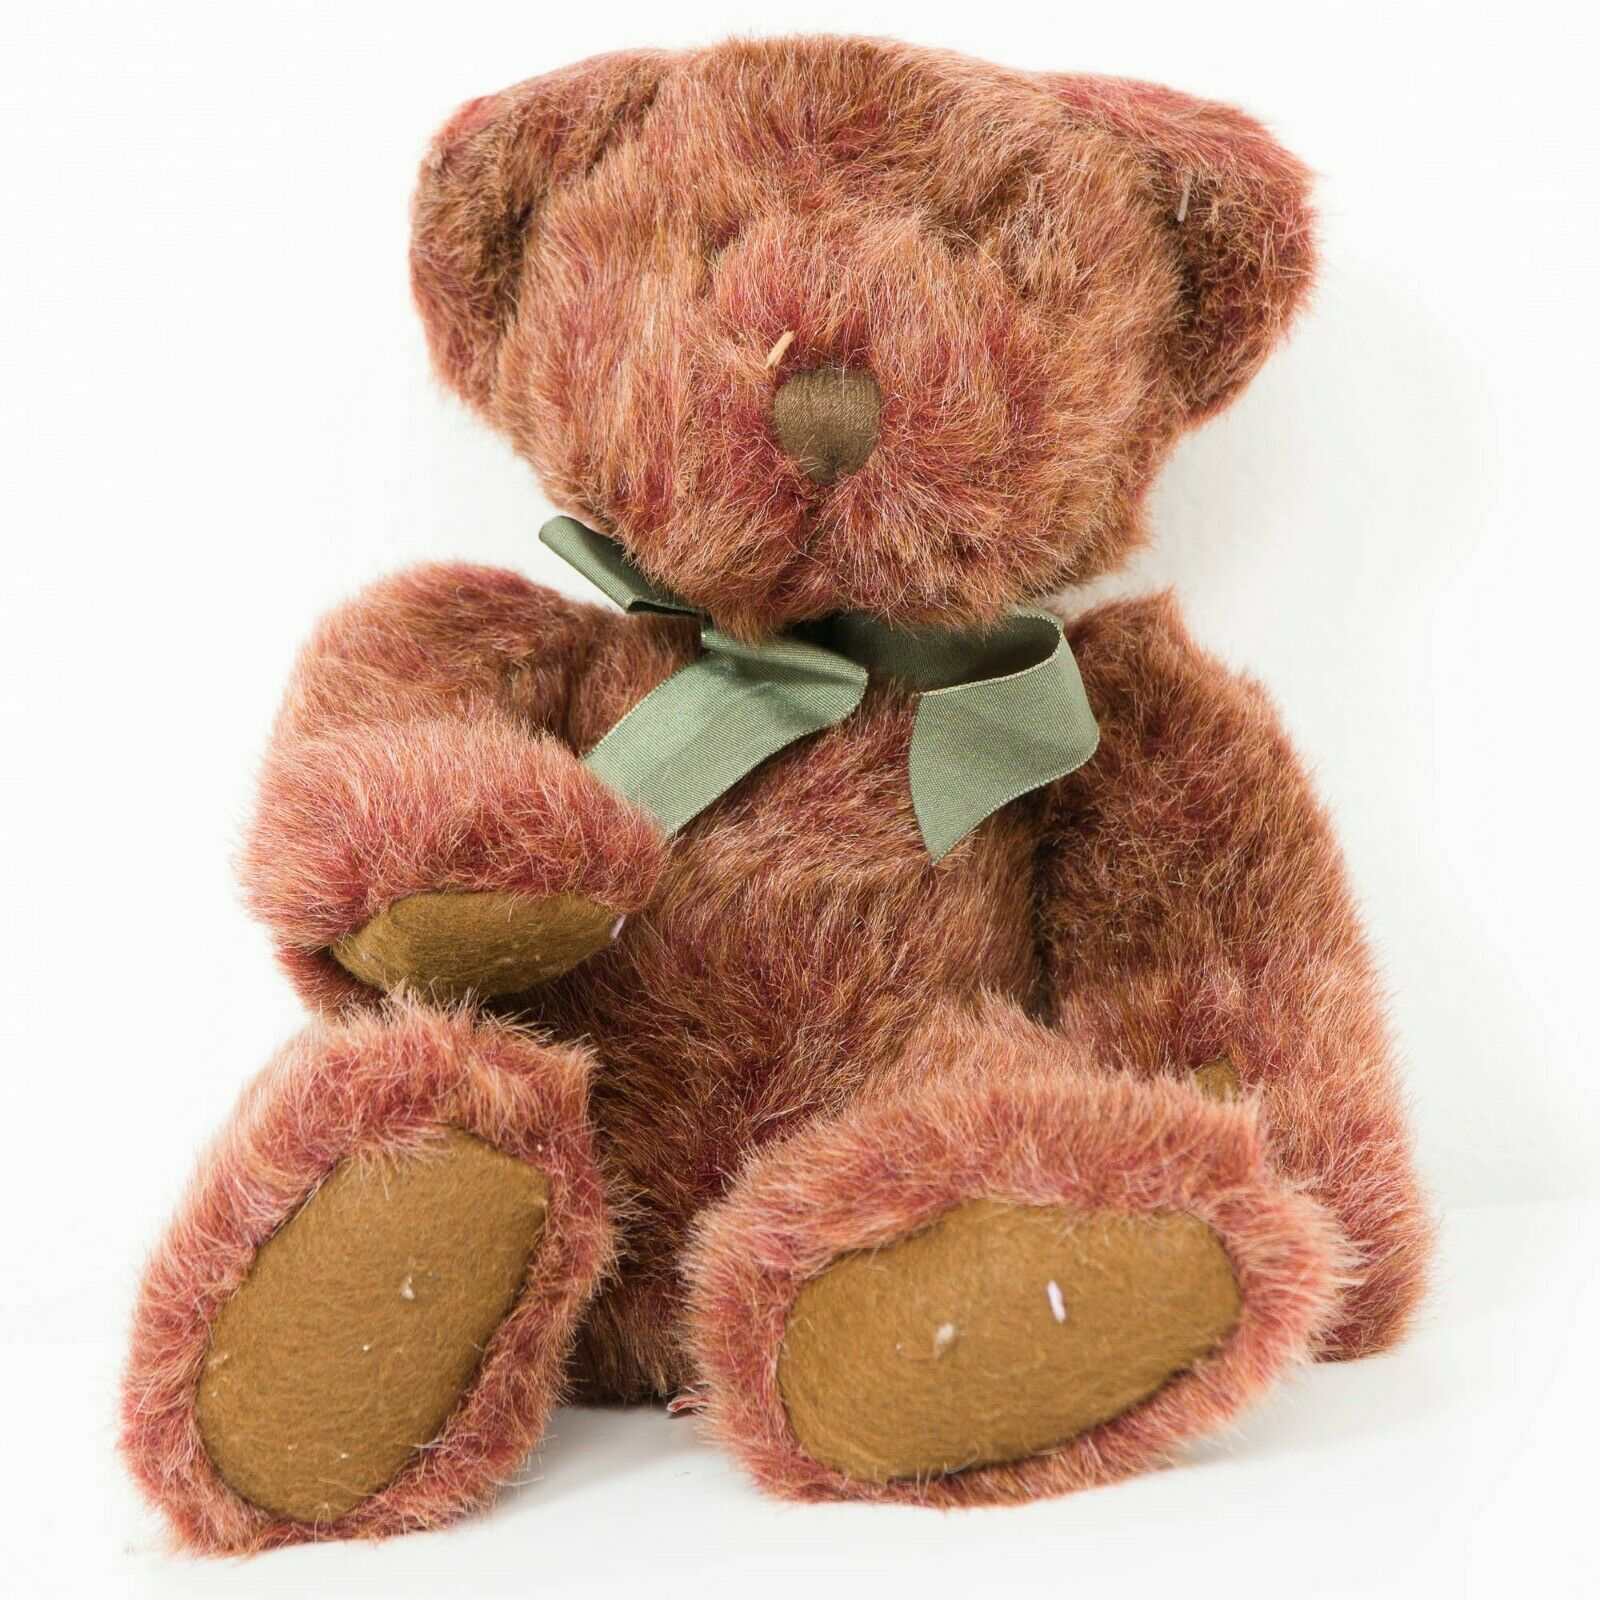 "Primary image for Russ Berrie Tinker Teddy Bear Plush 12"" Bears of Past Red Gold Stuffed Animal"